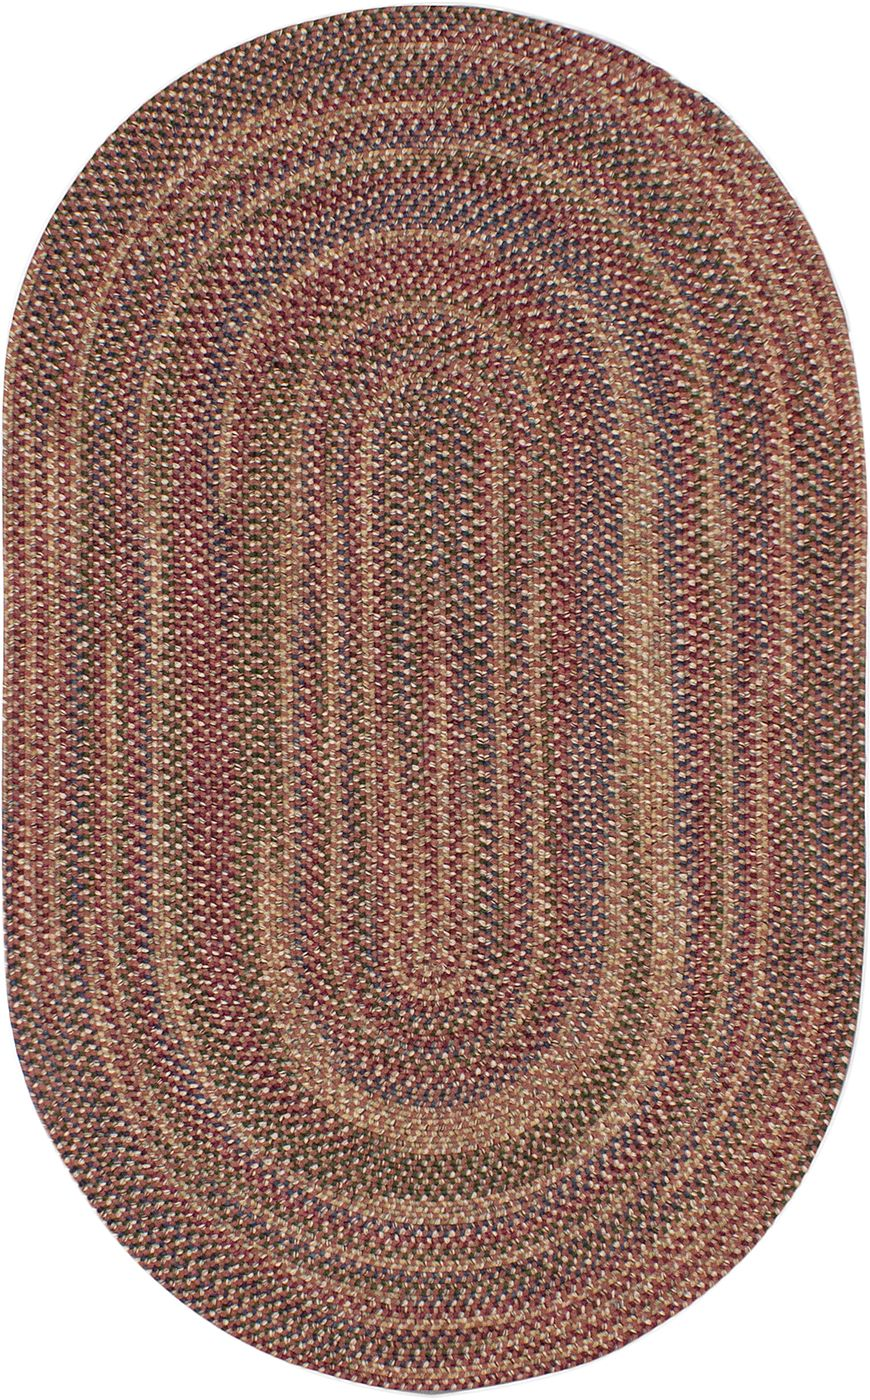 ecarpet gallery washington braided area rug collection